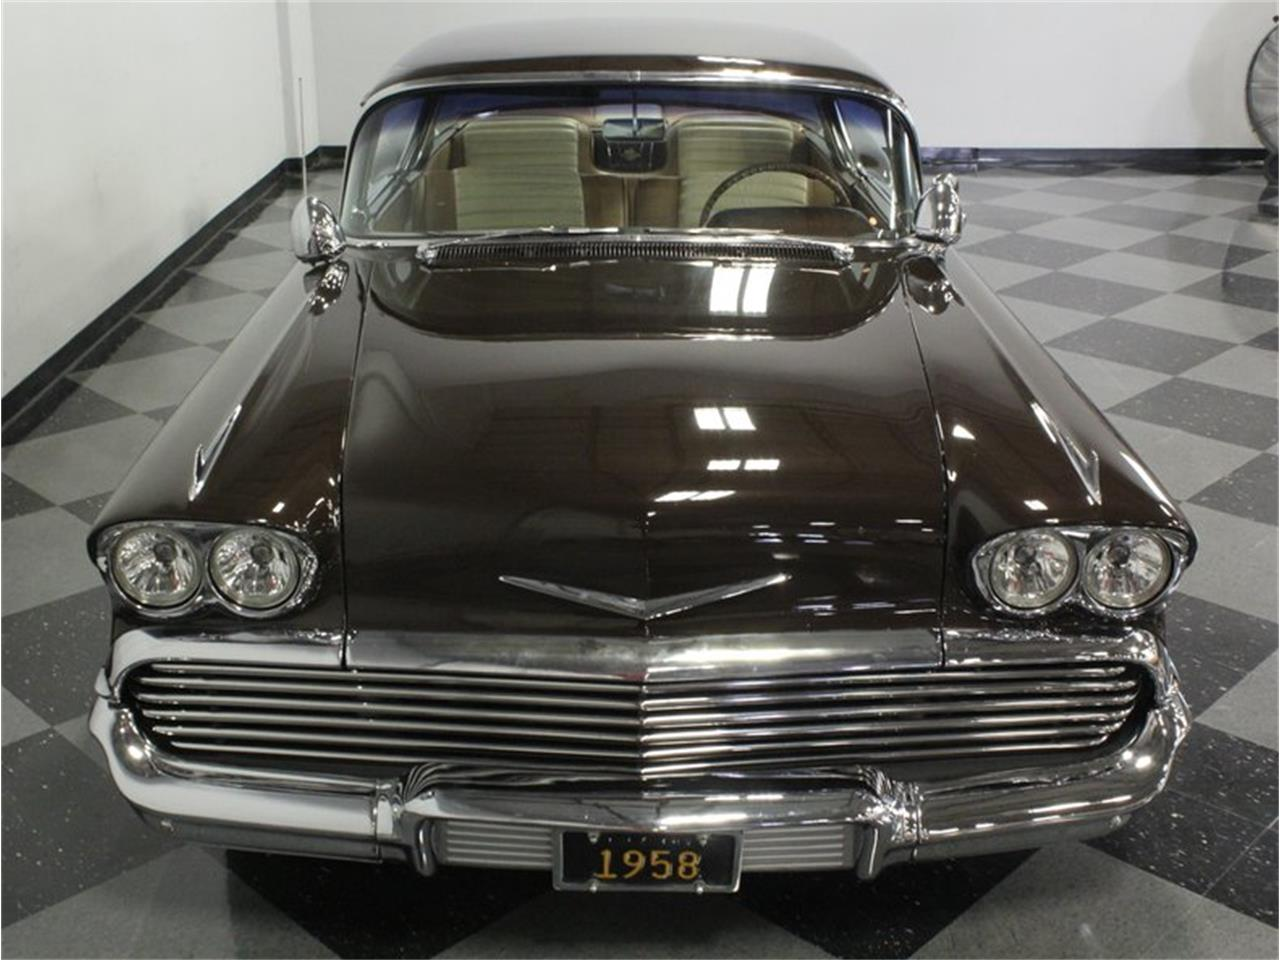 Large Picture of Classic 1958 Chevrolet Impala located in Ft Worth Texas - $44,995.00 - HX8B